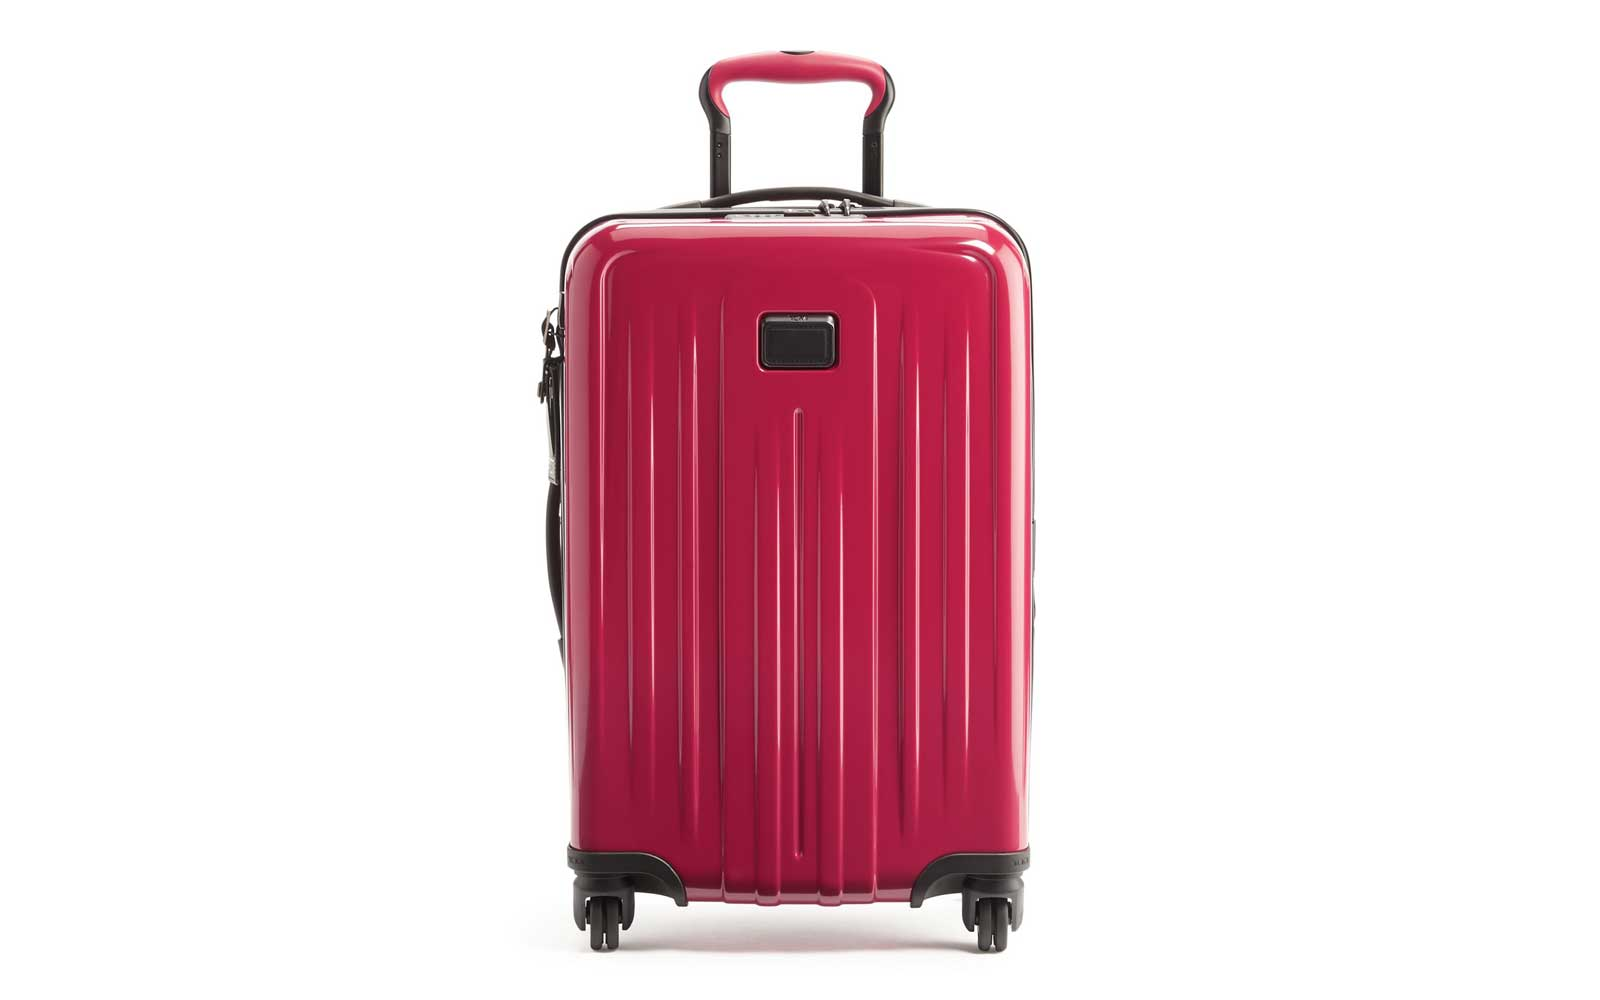 Tumi Pink Carry-on Suitcase